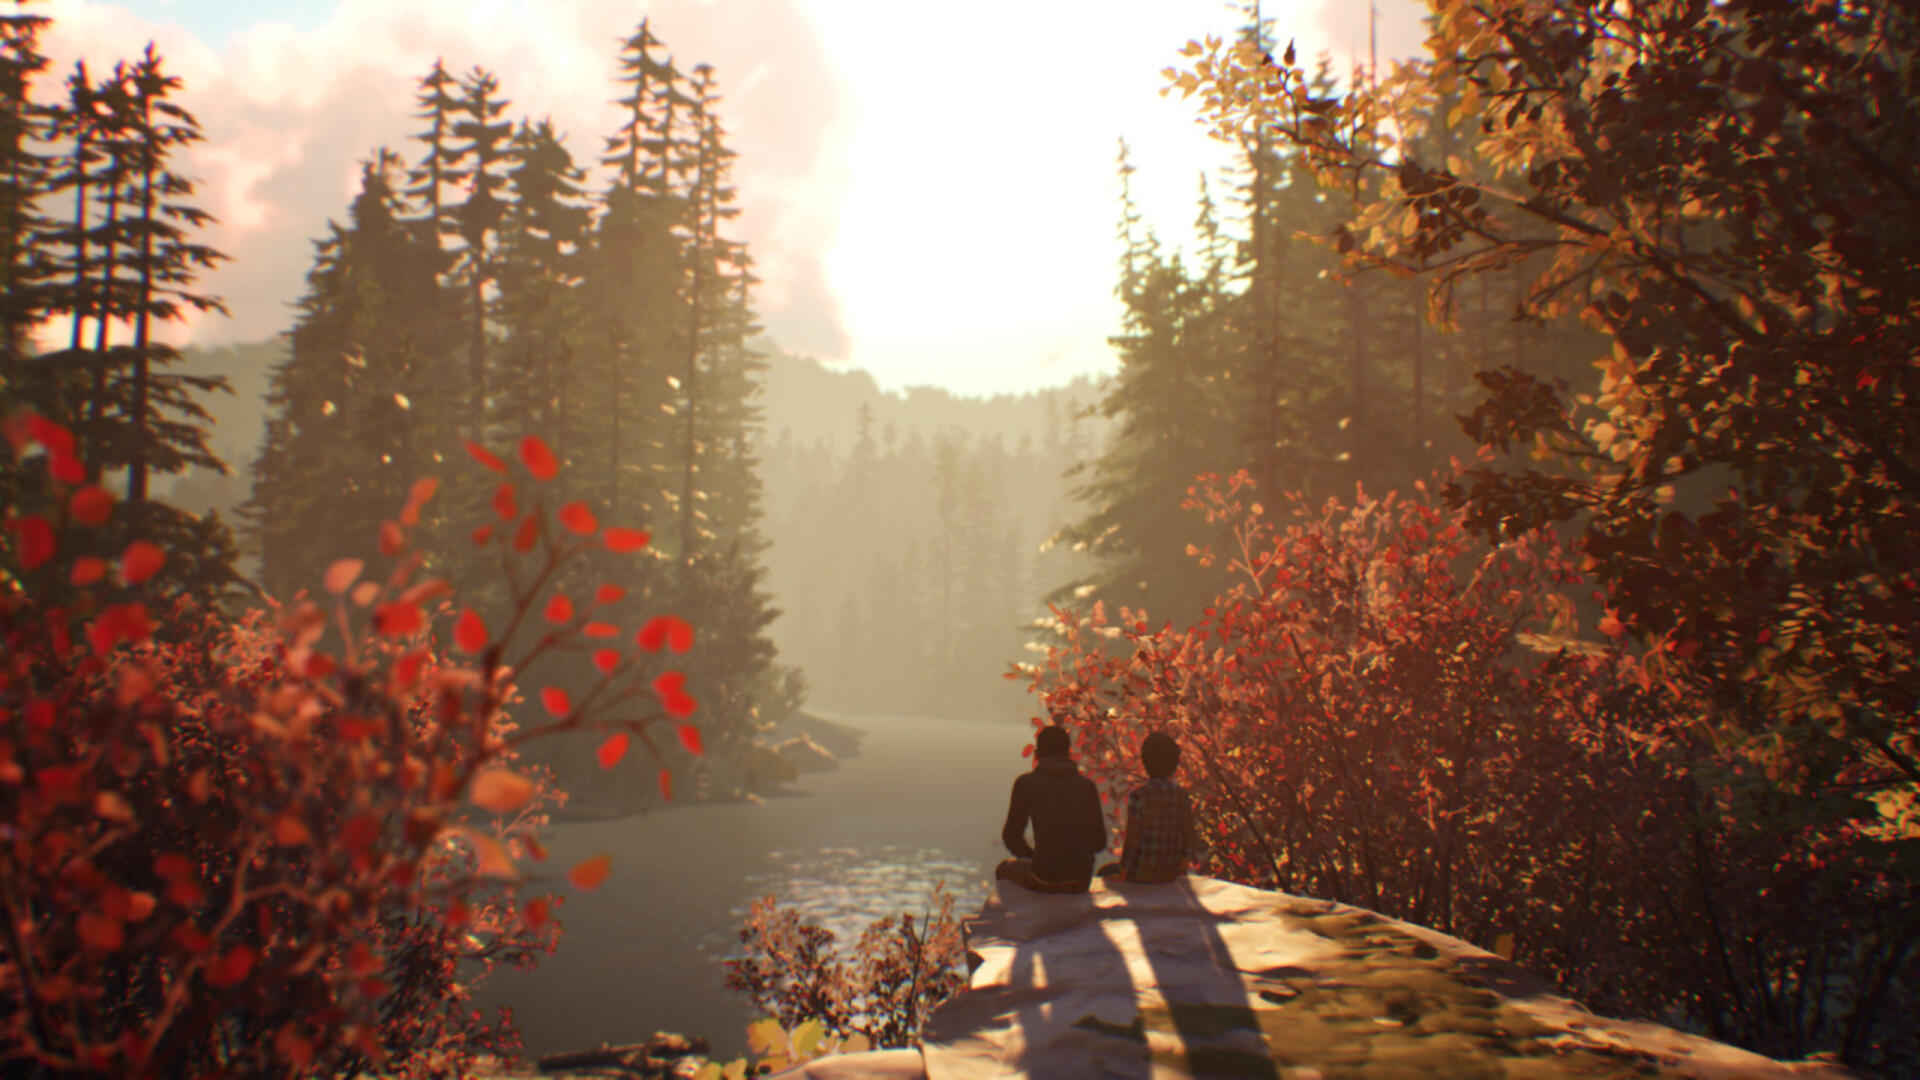 Life is Strange 2 Release Date, Characters, Gameplay, Trailer, Everything We Know